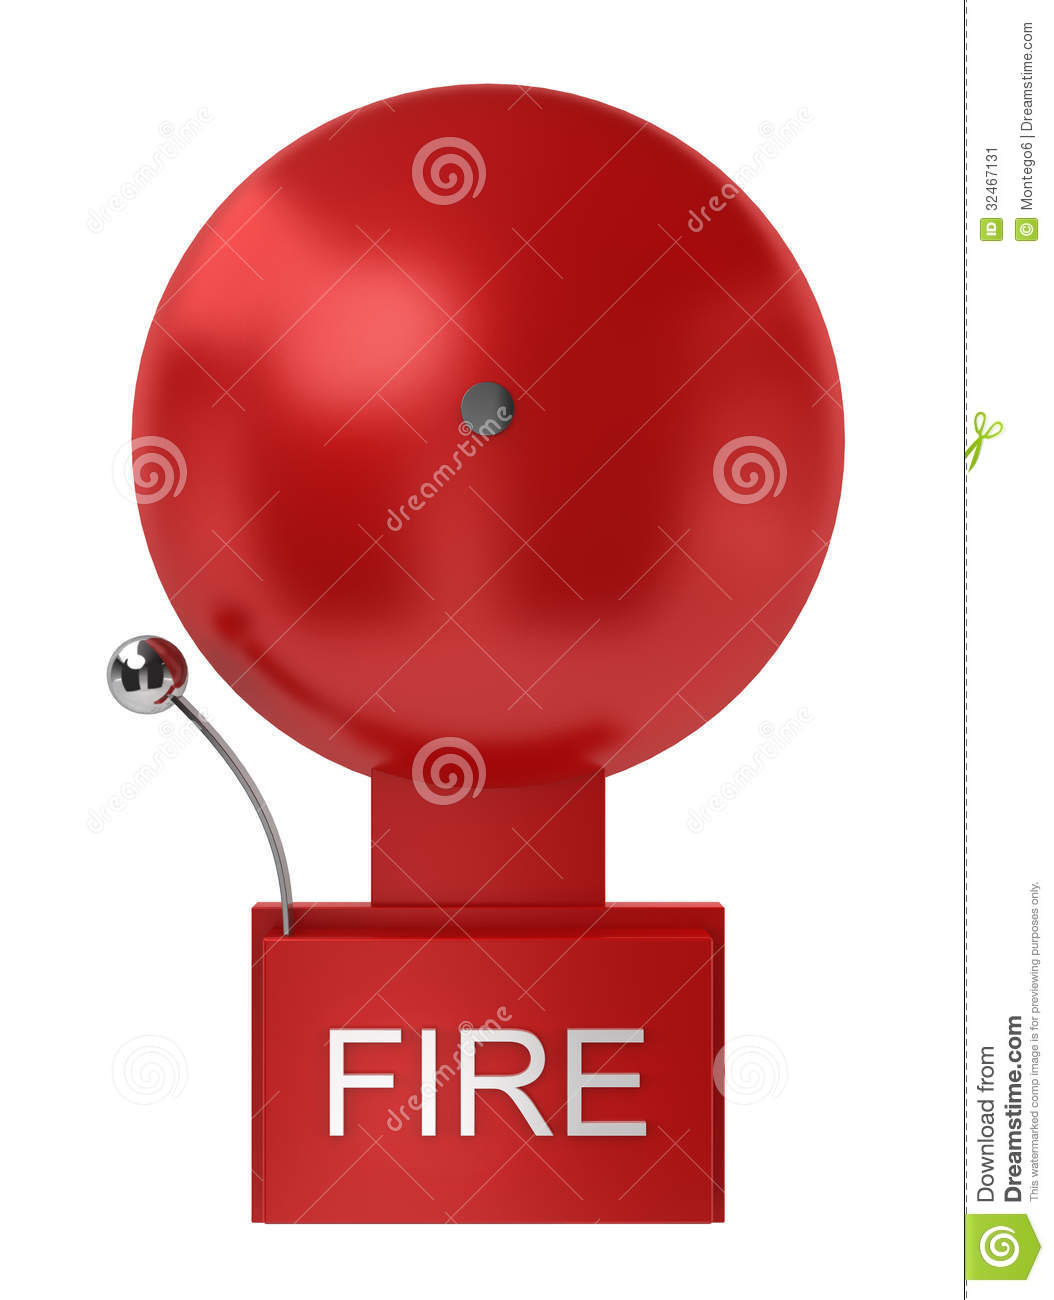 Fire Alarm Box Symbol besides Smoke Detector Pictures additionally Index php as well Stock Image Fire Alarm D Illustration White Background Image32467131 likewise Nfpa 23. on smoke alarm symbol